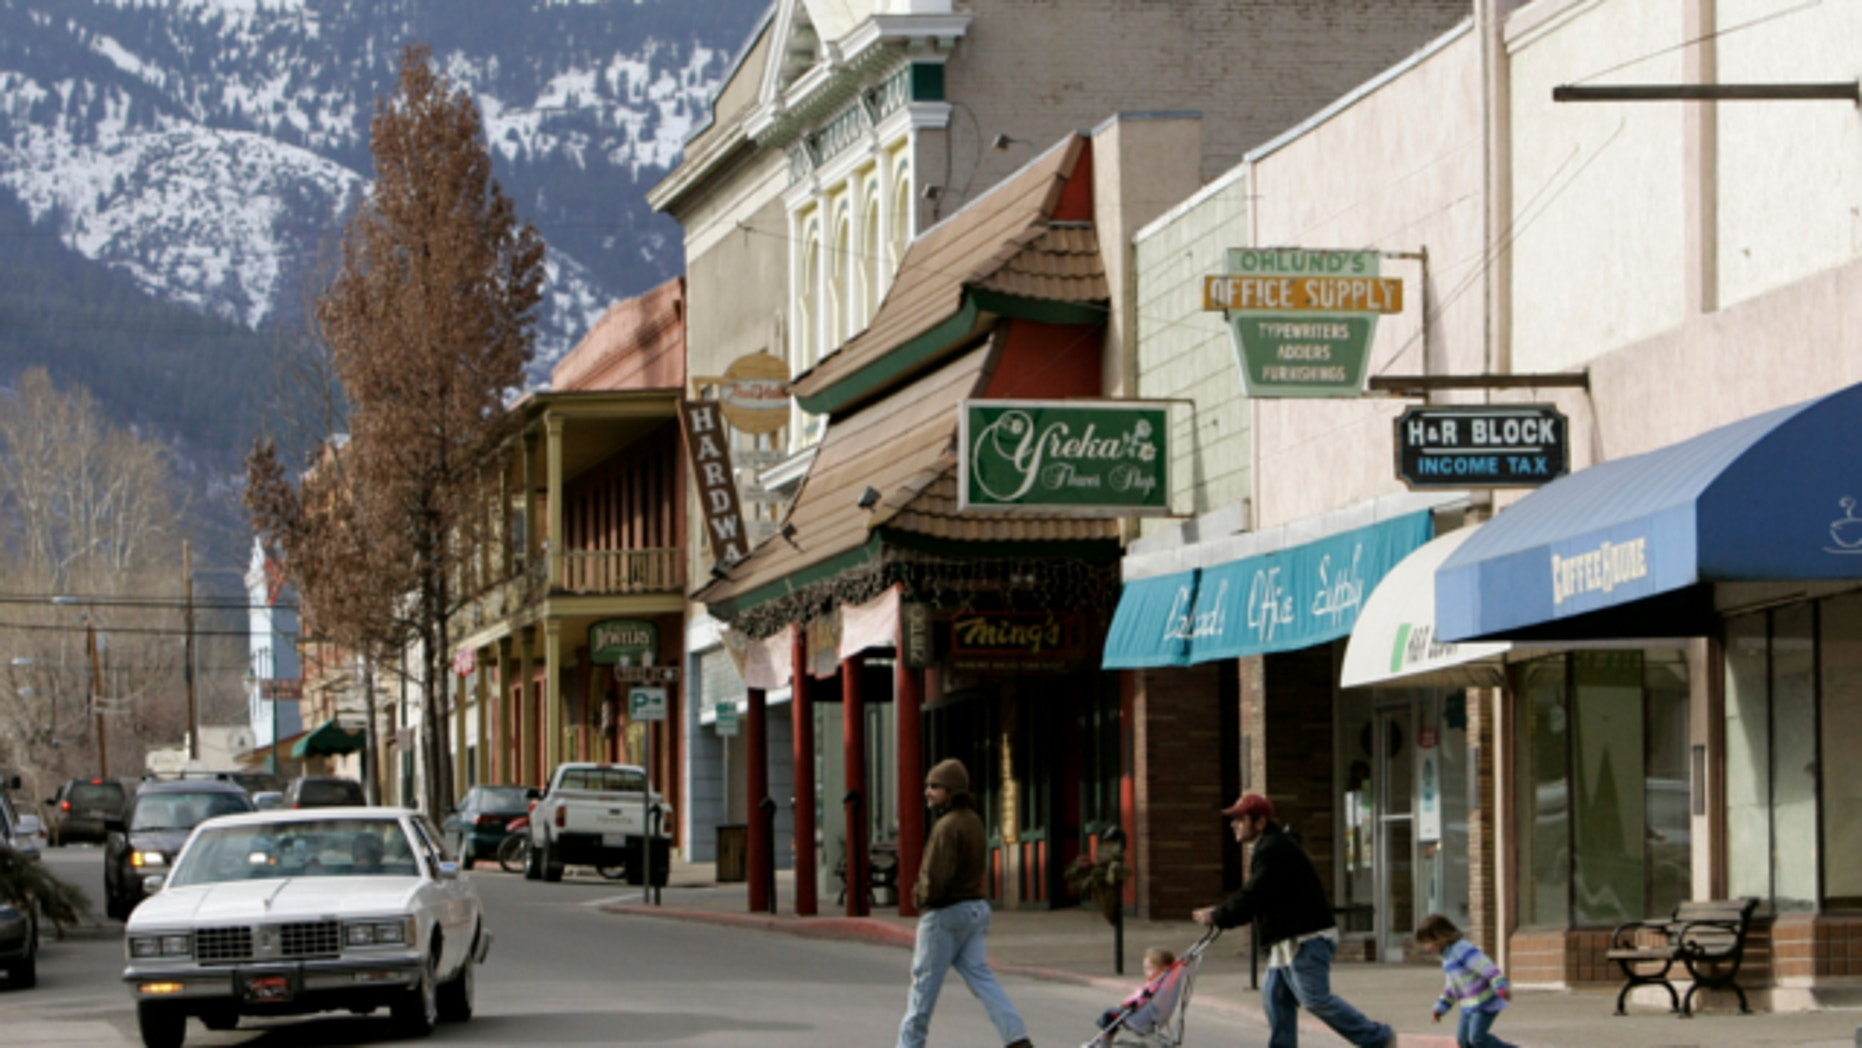 FILE: Feb. 20, 2008: Pedestrians cross Miner Street in Yreka, Calif., Feb. 20, 2008.